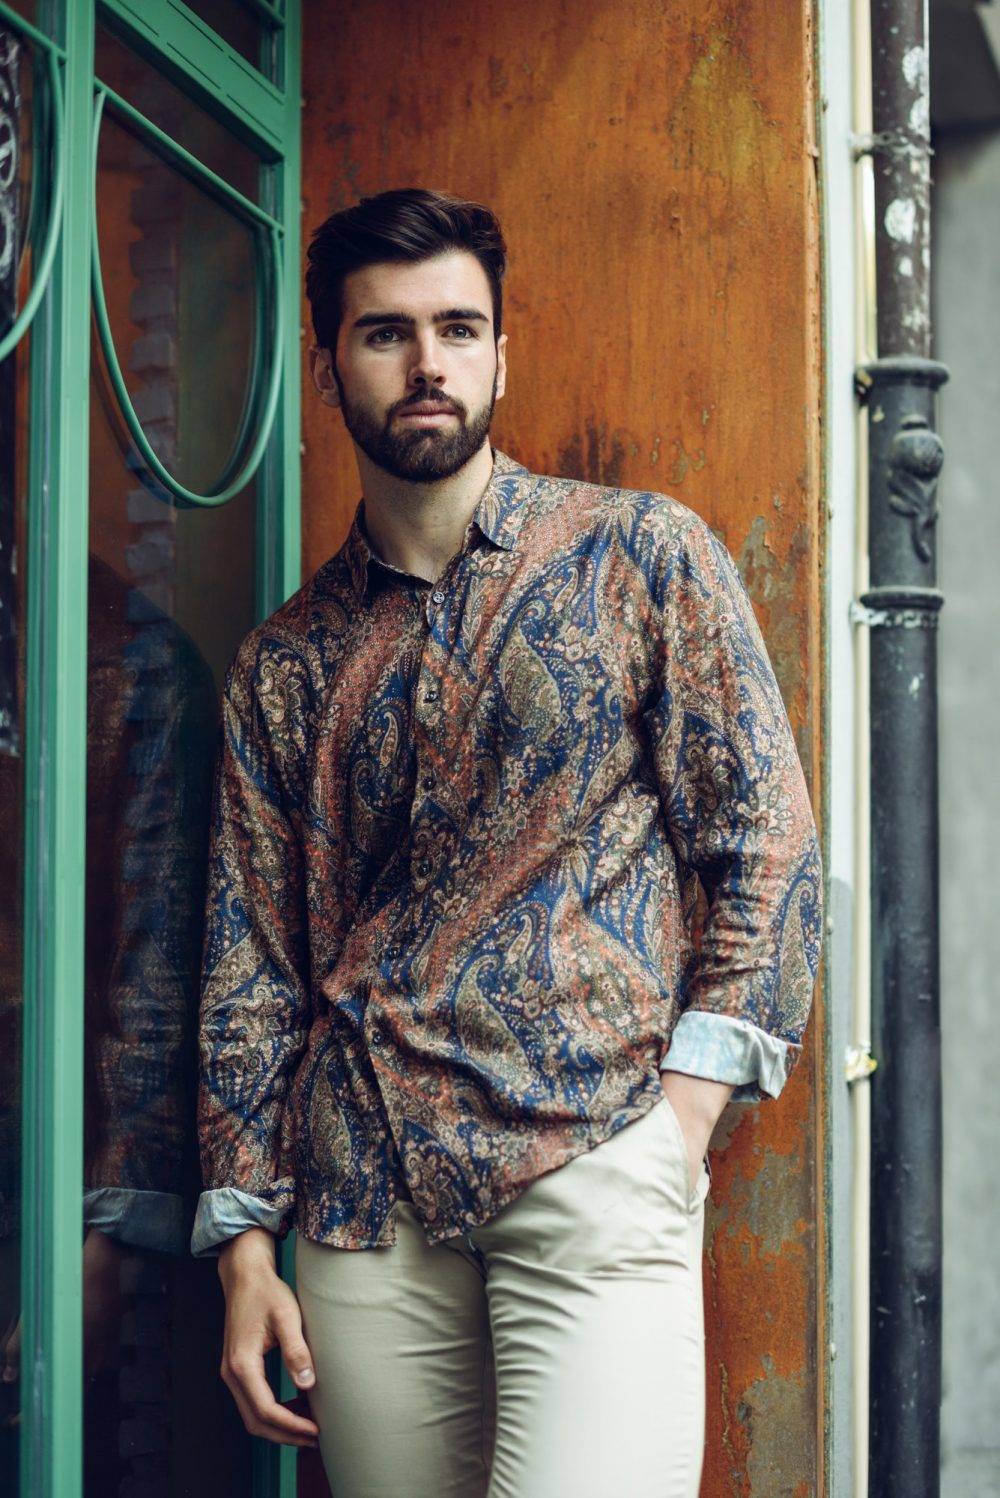 Young bearded man, model of fashion, wearing shirt in urban back